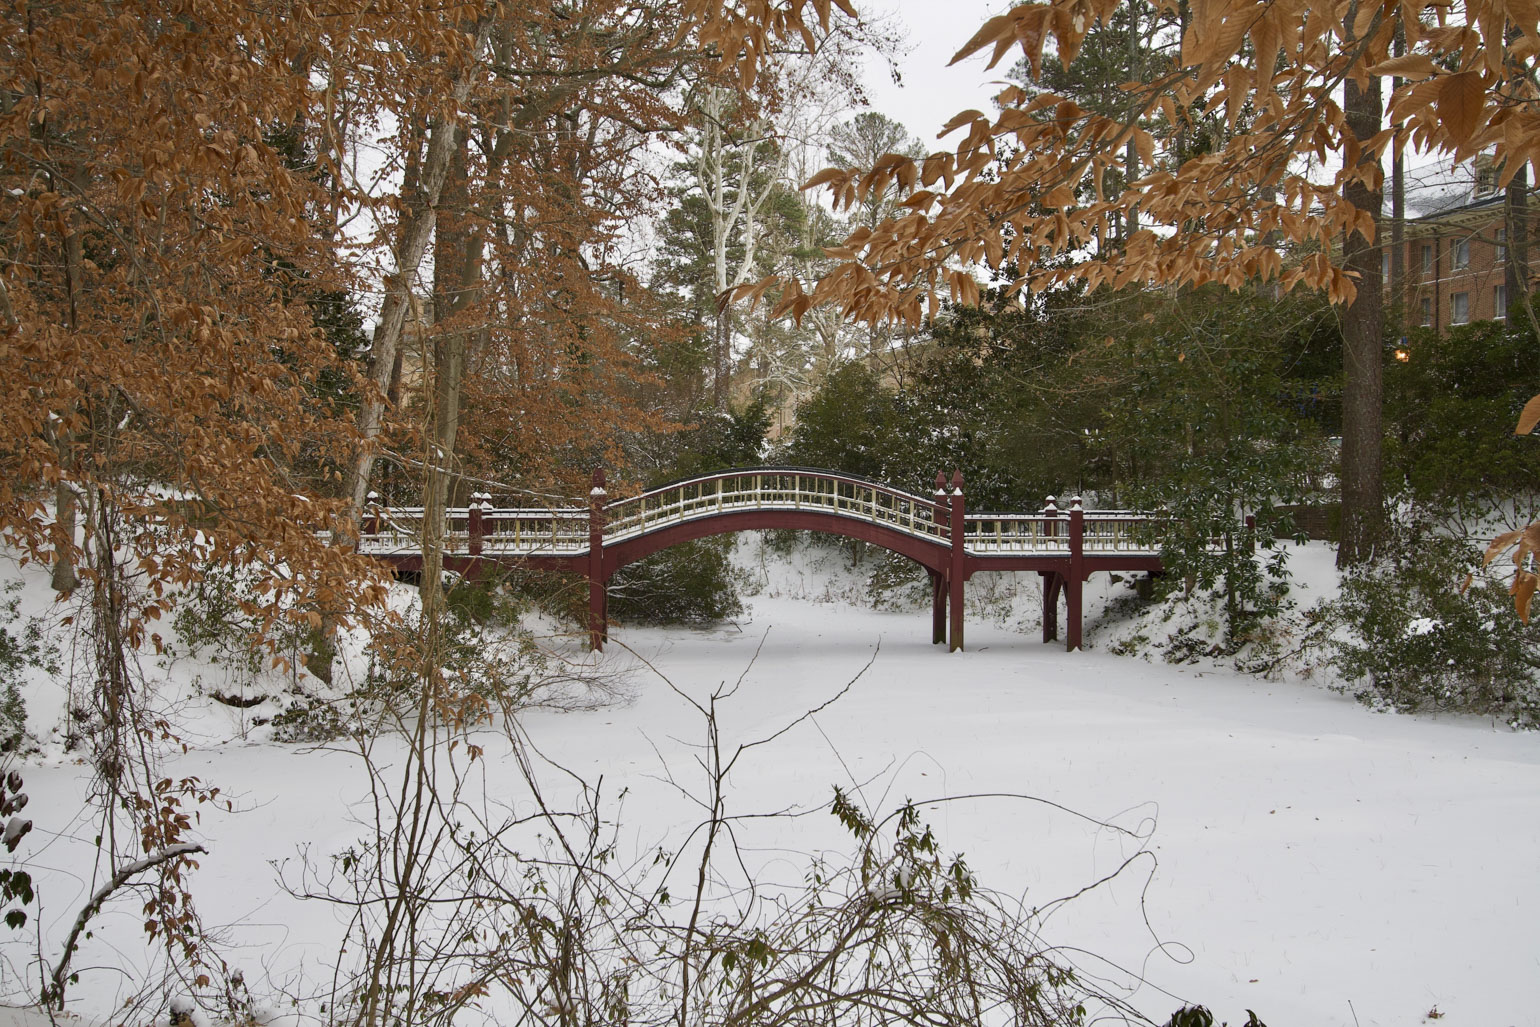 winter-wonderland-at-william---mary-photo0.jpg